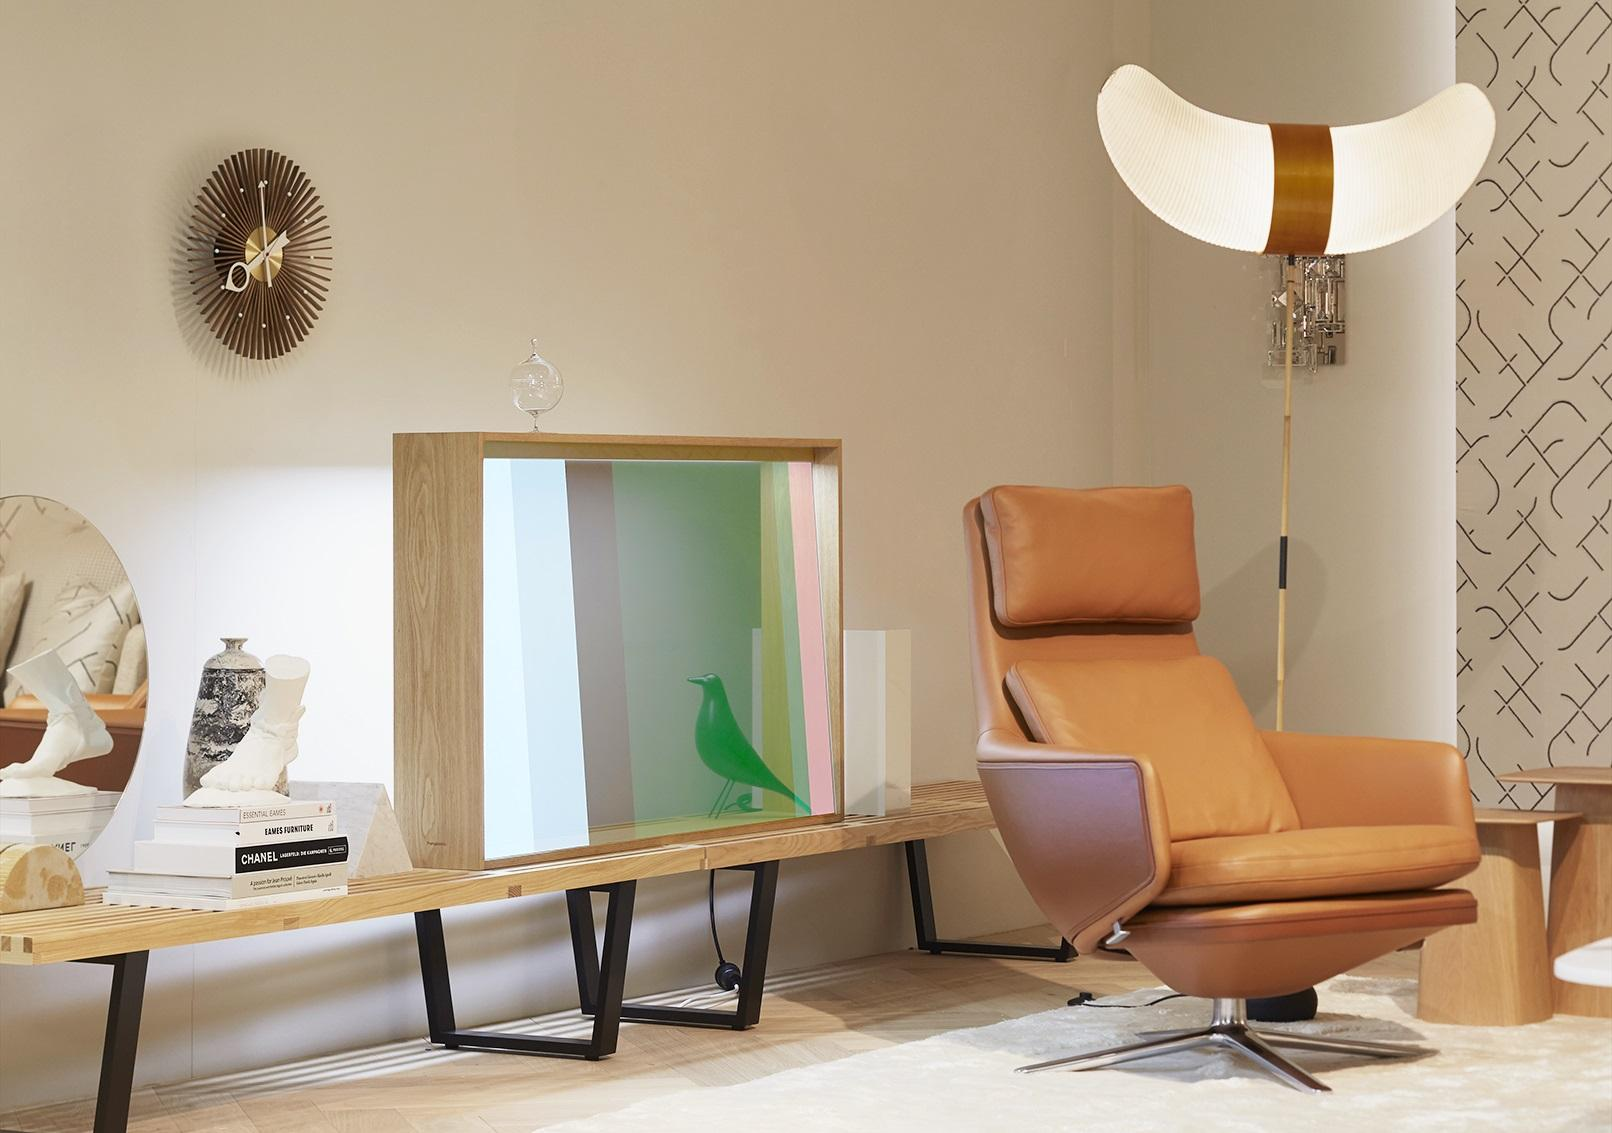 photo: Panasonic's transparent OLED concept display unveiled at the Vitra booth at Salone del Mobile